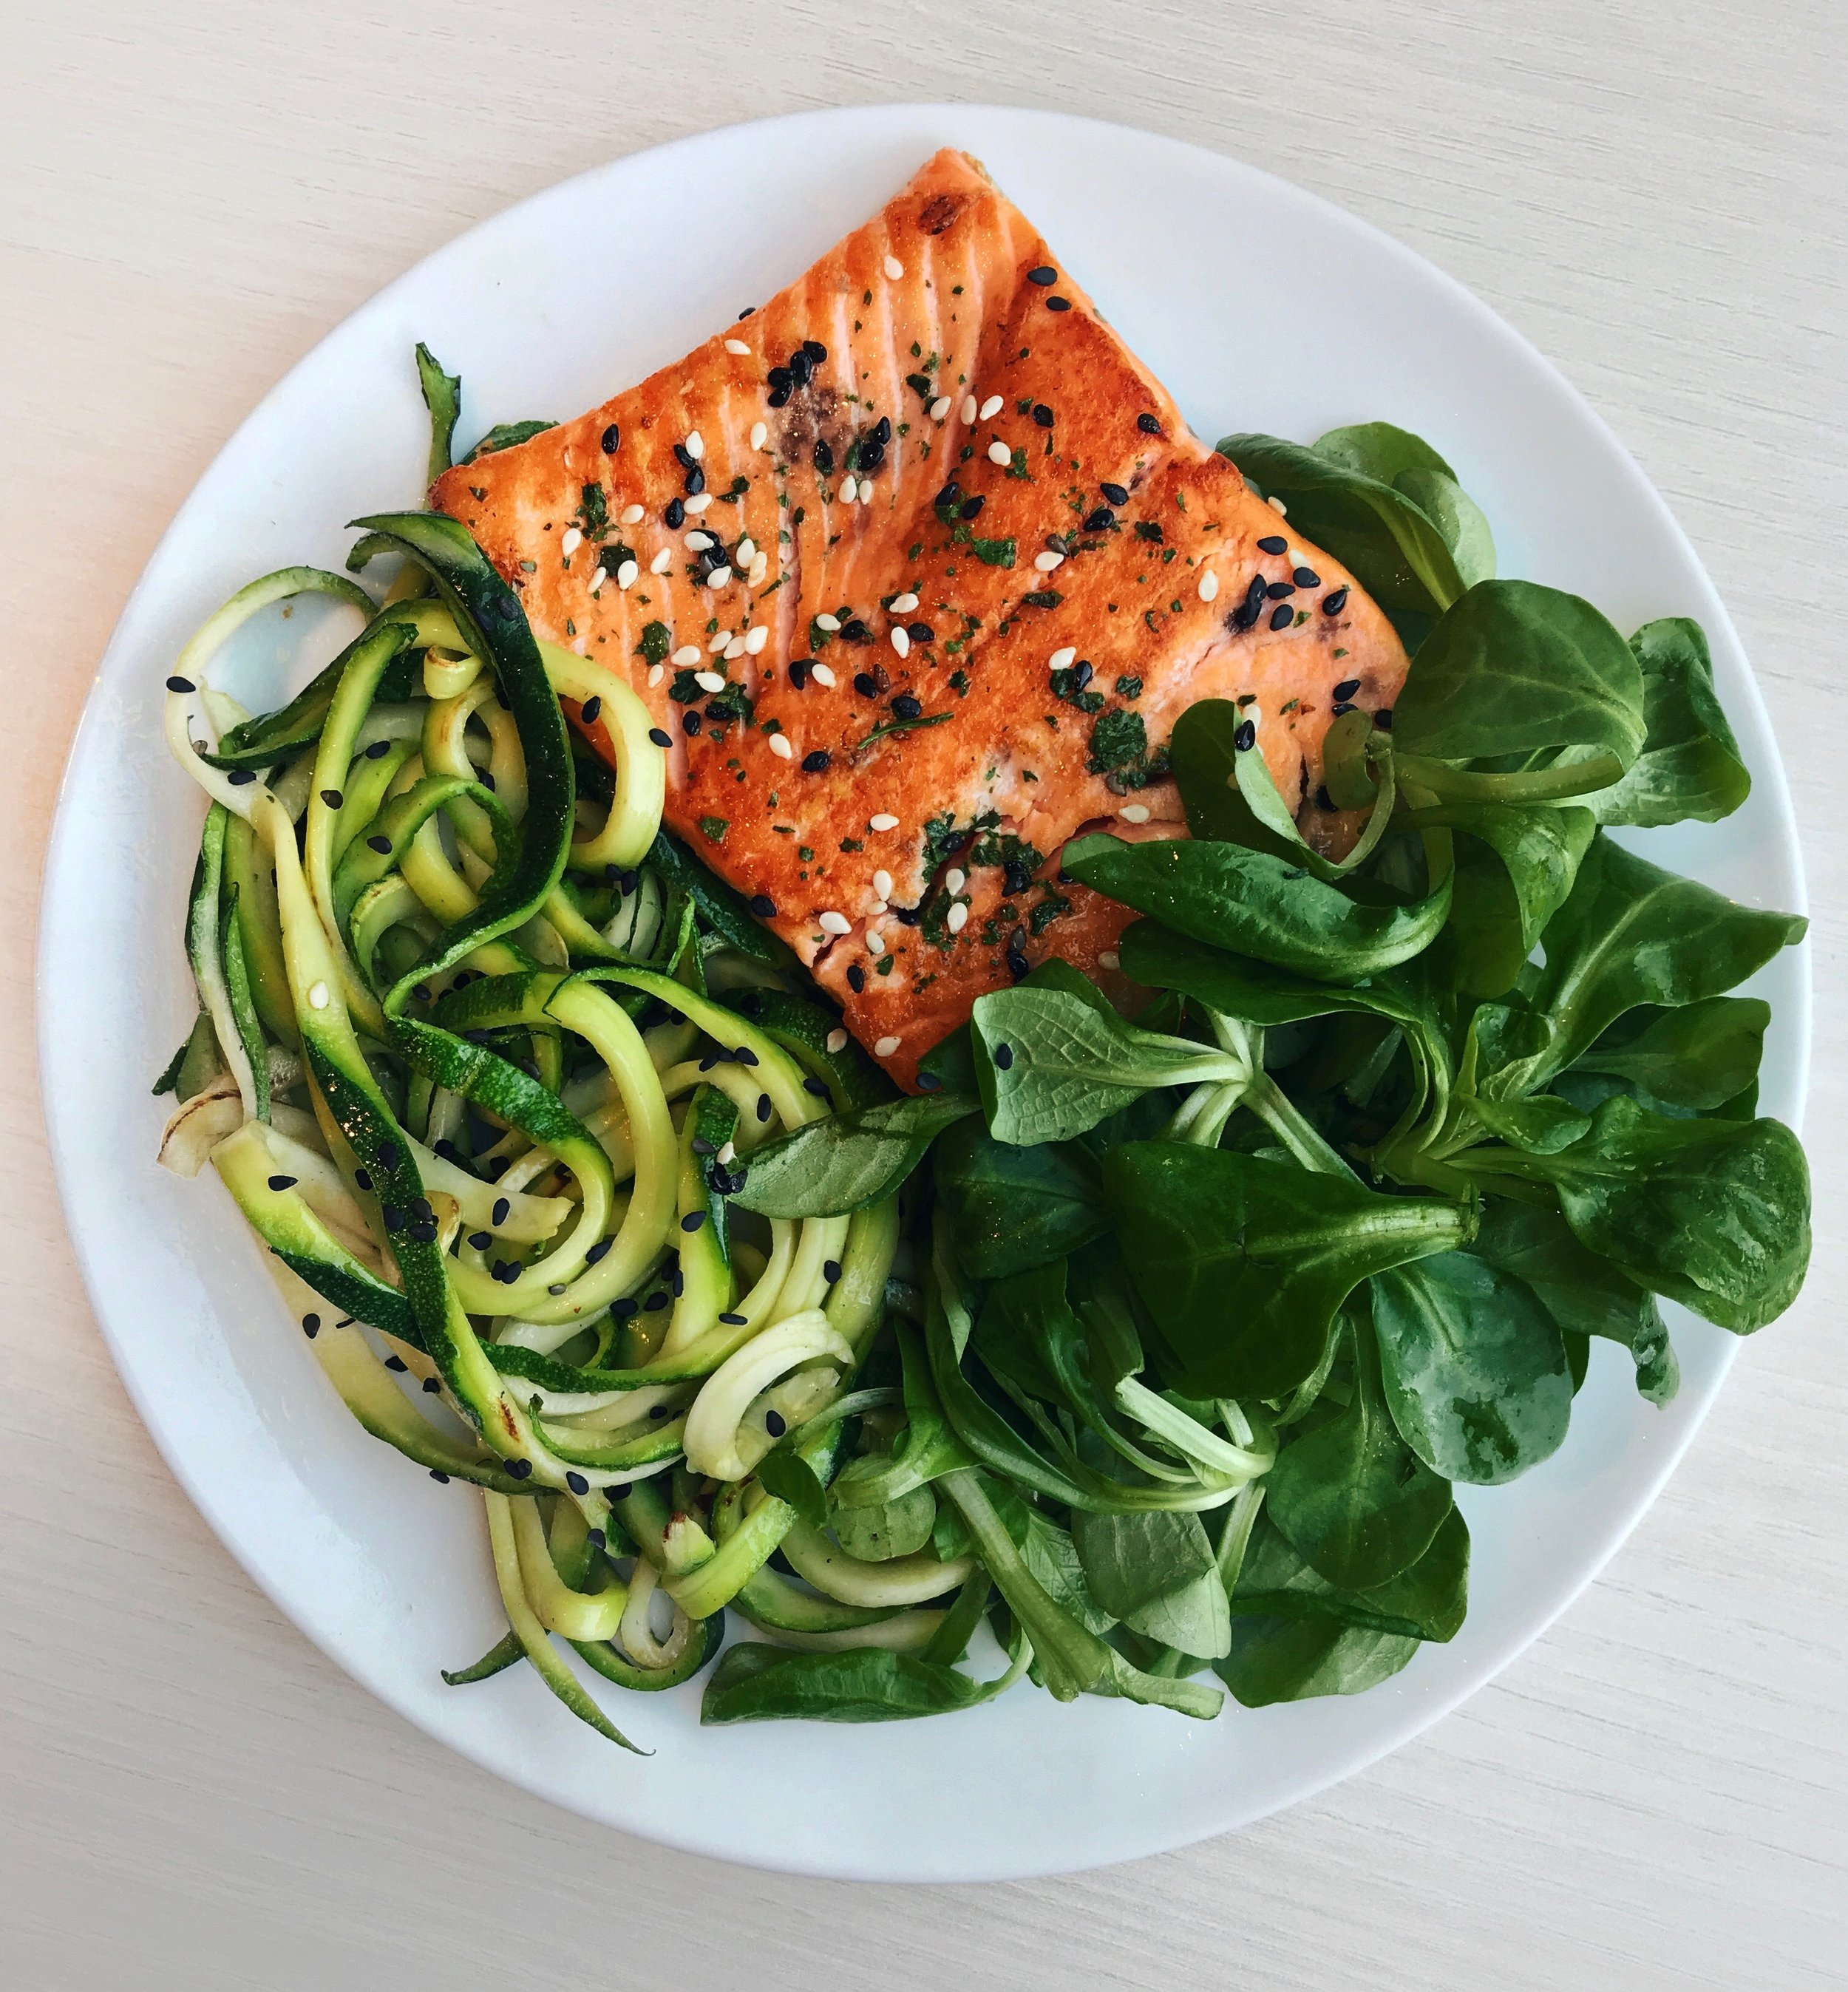 Sesame Grilled Salmon, Zoodles & Salad - Grilled salmon (cooked in olive oil for about 3mn on each side) + black and white sesame seeds + sauteed zoodles (just a few seconds in the pan on high heat with olive oil as well) + salad leavesQuick tip on cooking salmon: to get a crispy skin + golden color on the salmon, I recommend starting the cooking on high heat, and putting the non-skin part first. After 1min turn back on low/medium-heat, cook 2 extra minutes and flip + leave to stay for about 3min more.